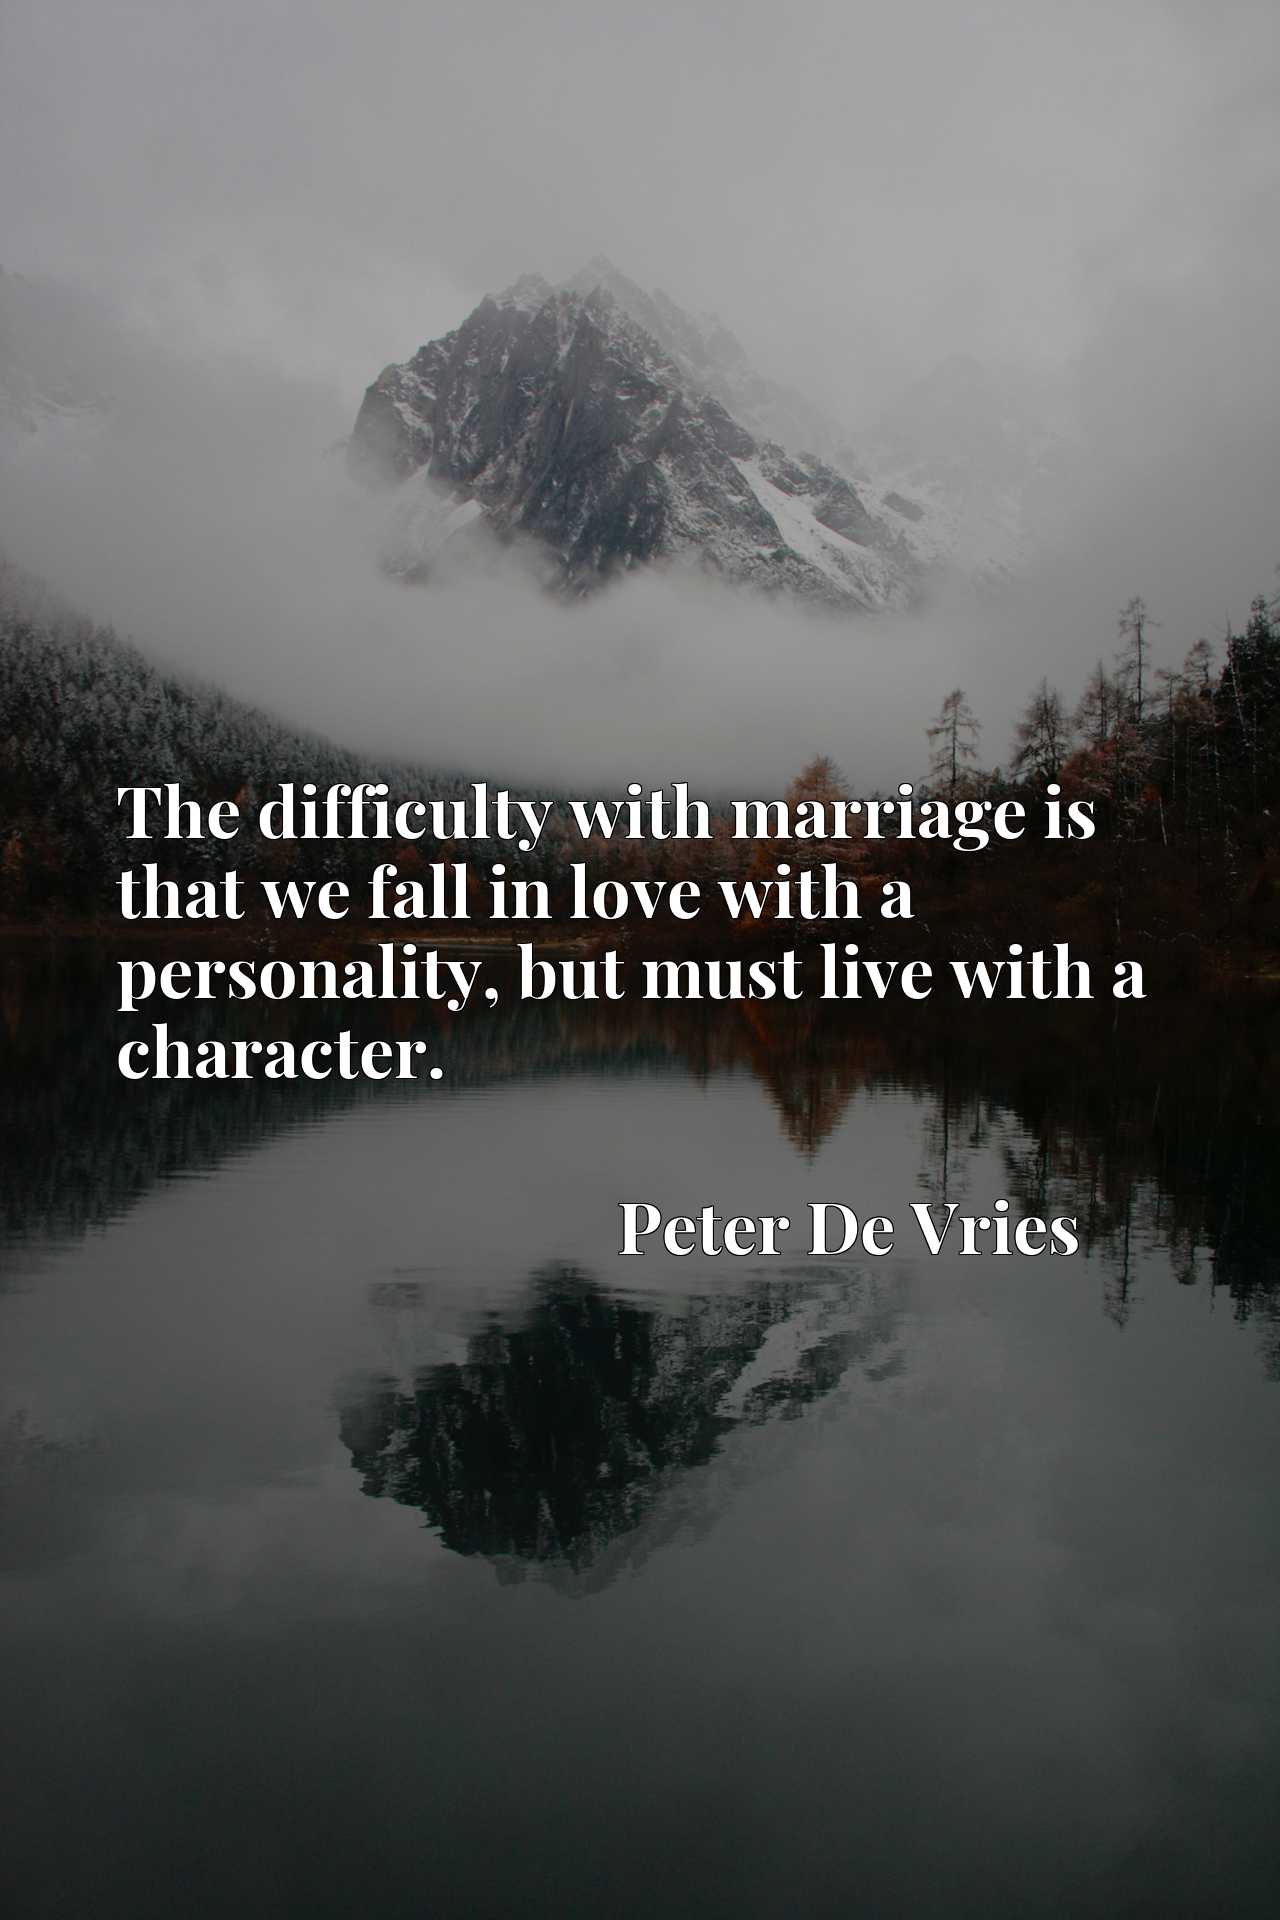 Quote Picture :The difficulty with marriage is that we fall in love with a personality, but must live with a character.